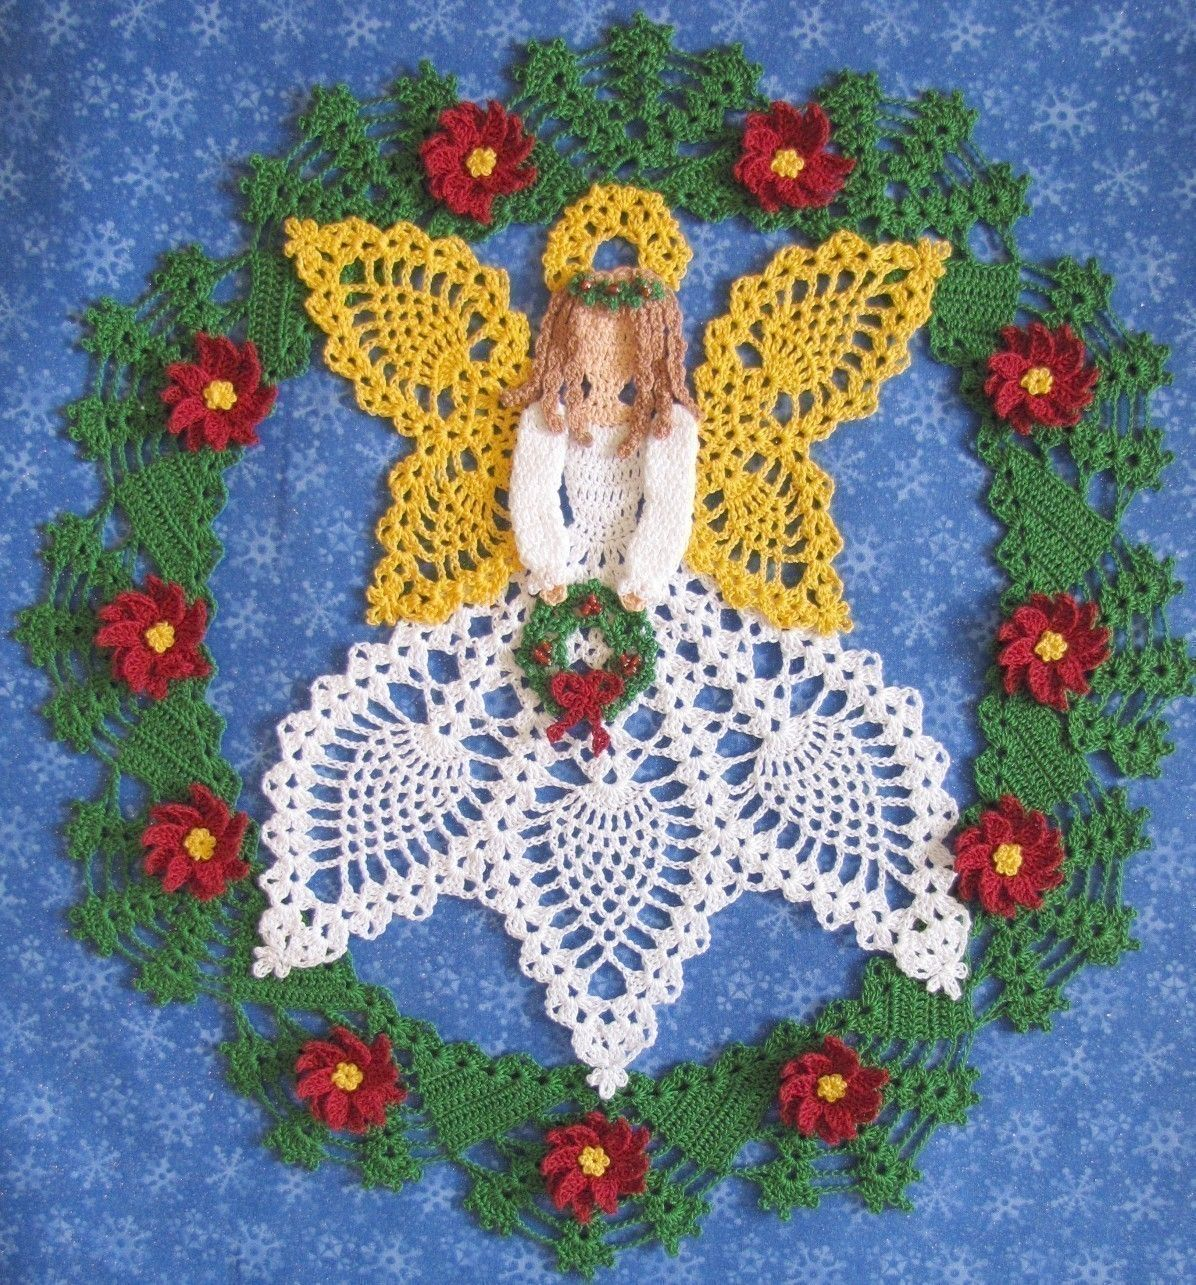 Freechristmas chrochet free christmas crochet patterns freechristmas chrochet free christmas crochet patterns snowflake patterns free doilies bankloansurffo Image collections